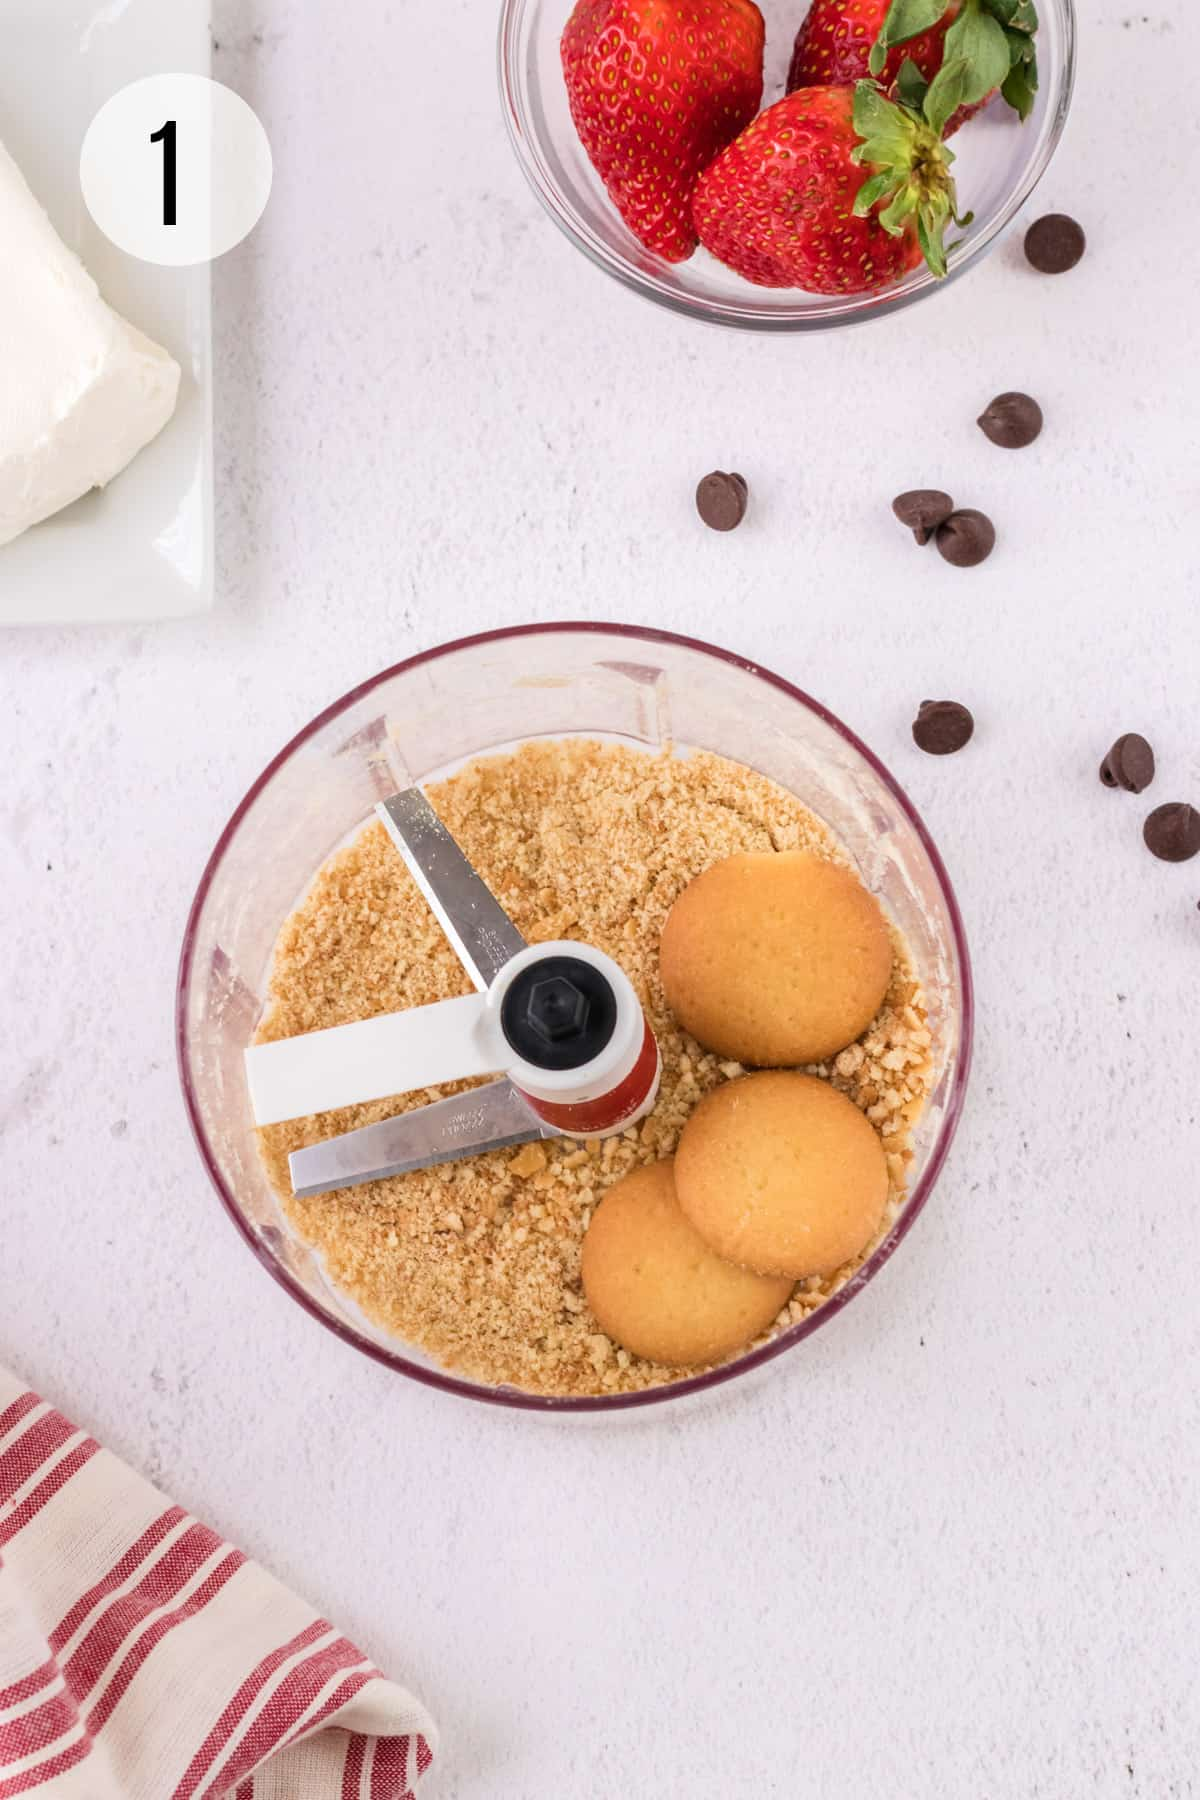 Handheld food chopper with vanilla wafer cookies finely chopped and chocolate chips, strawberries and cream cheese in upper background.